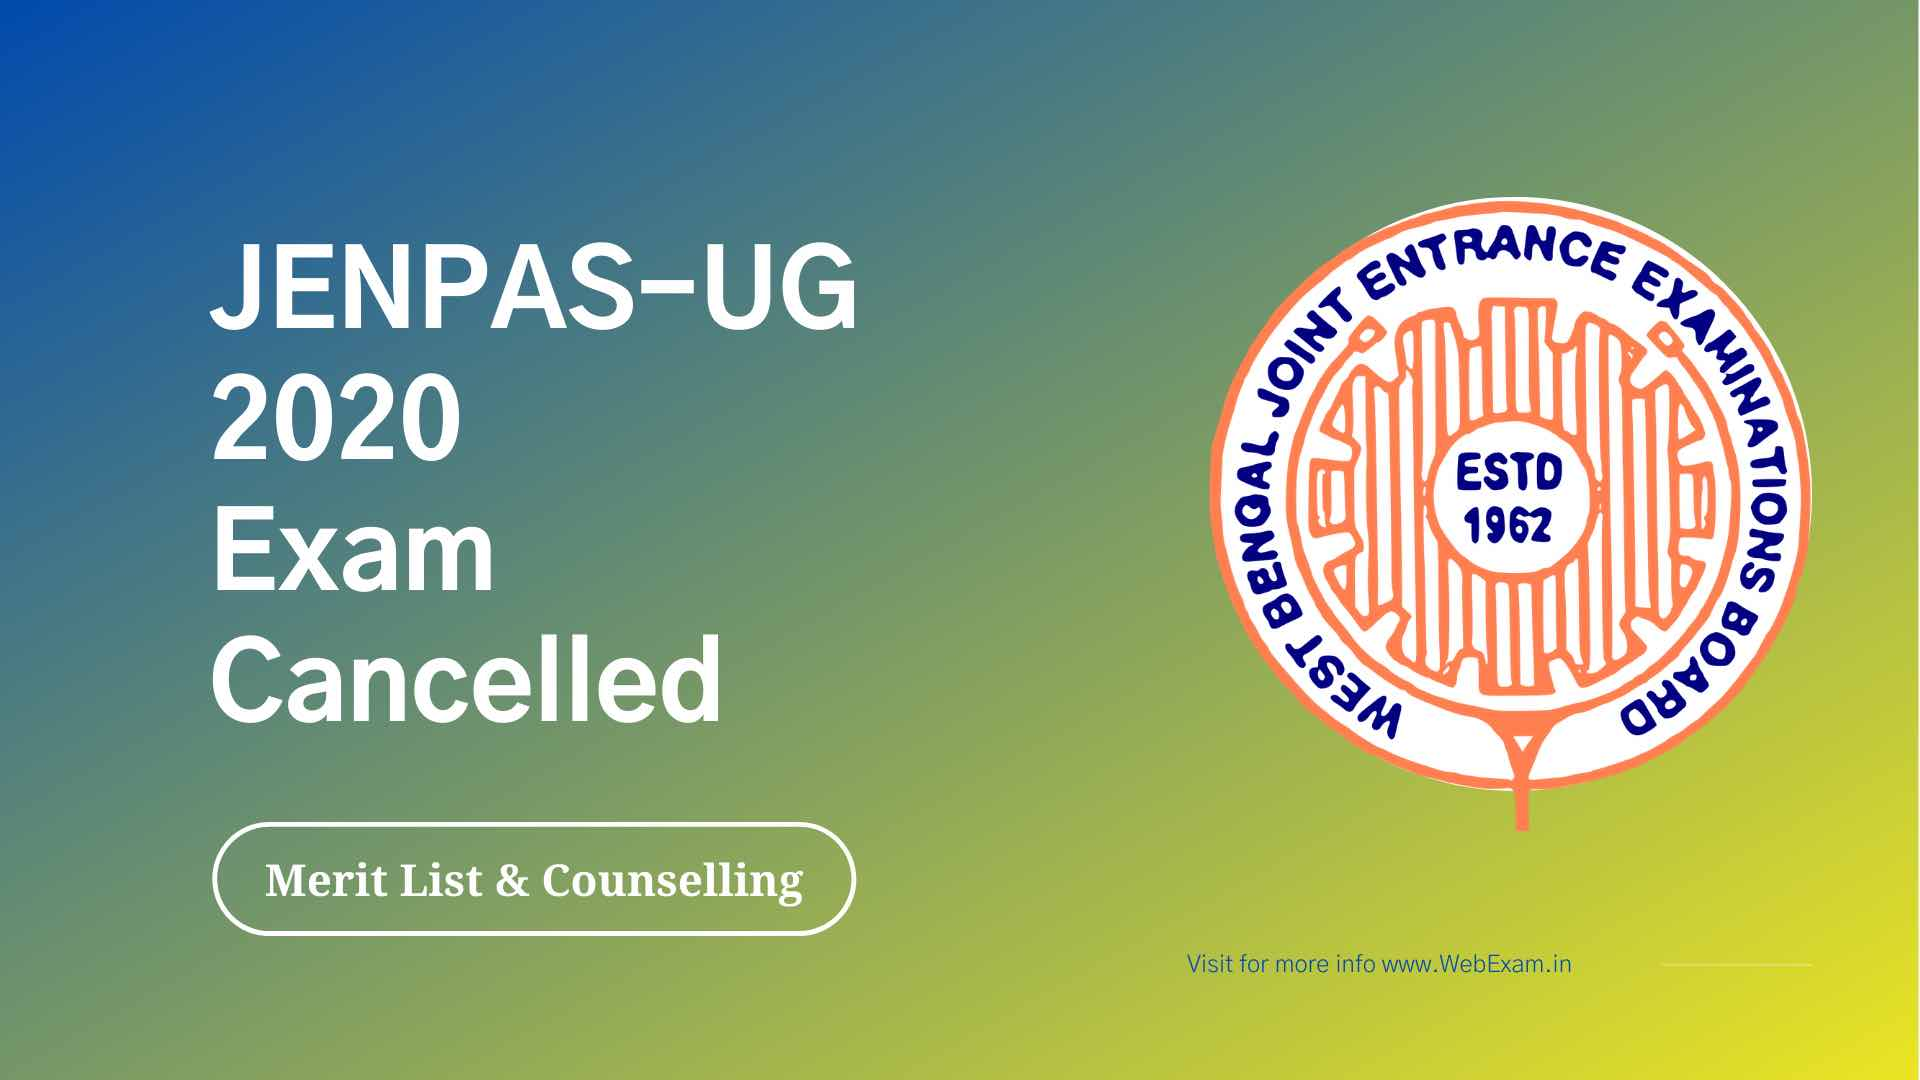 WBJEE JENPAS UG 2020 Exam cancelled